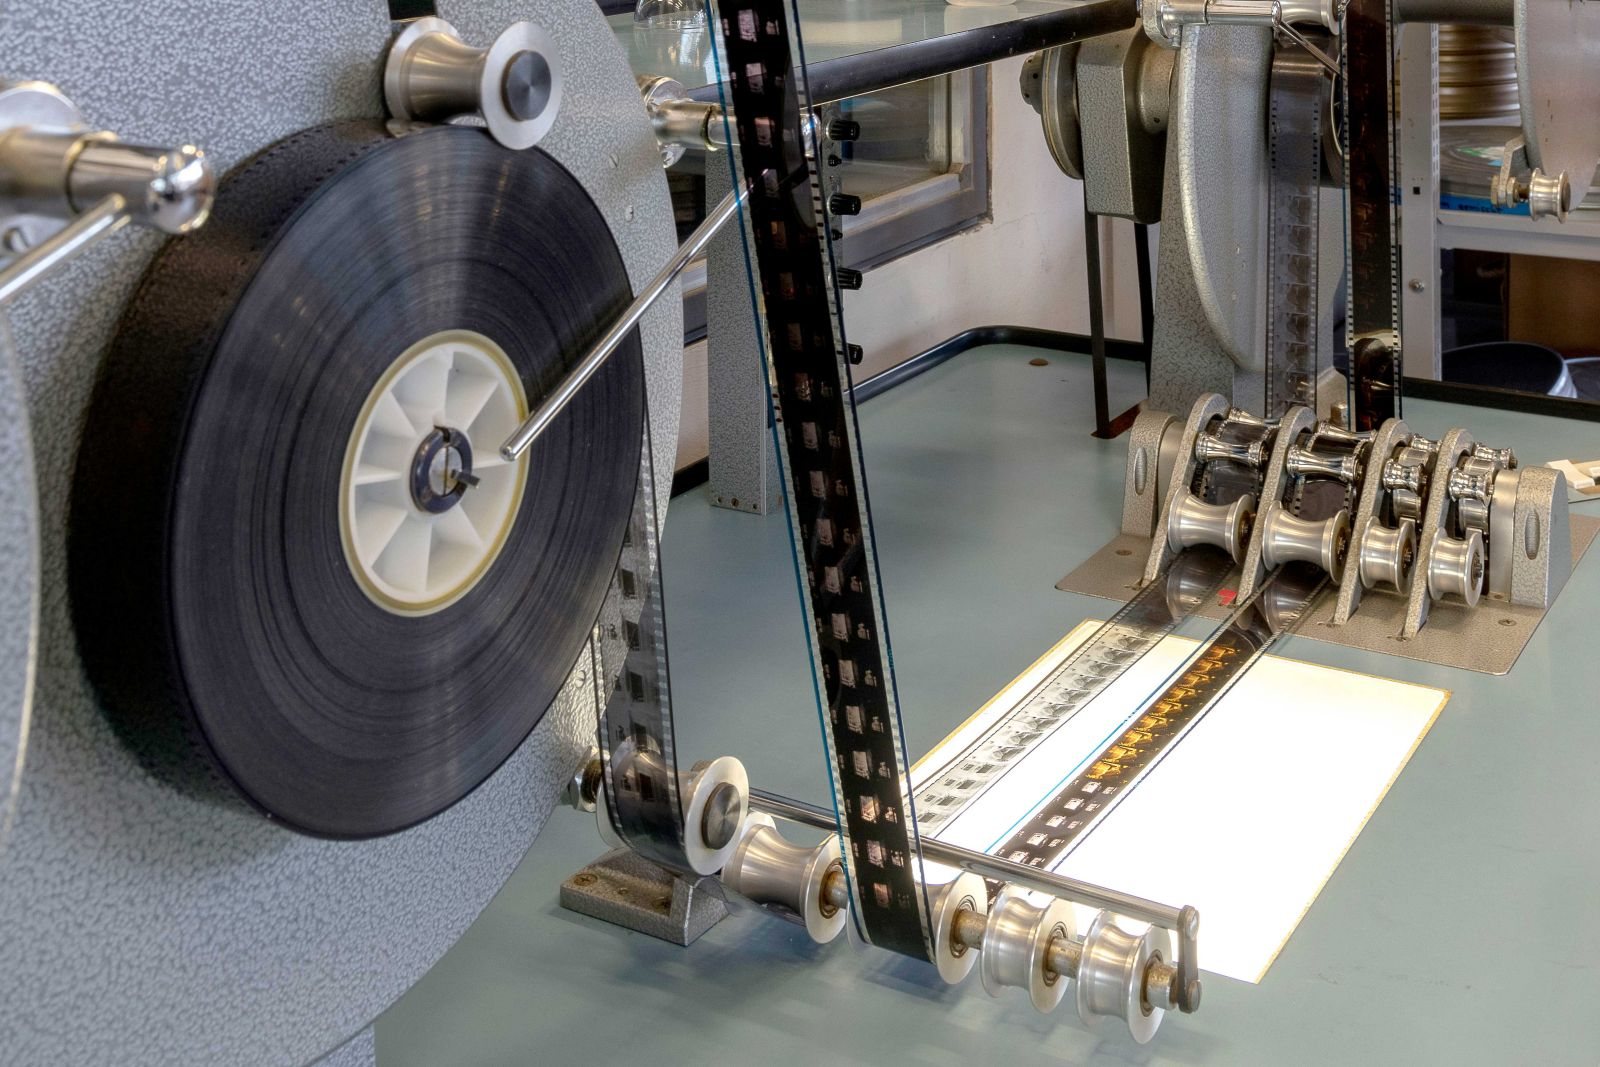 Film Archive, Deutsche Kinemathek, Berlin